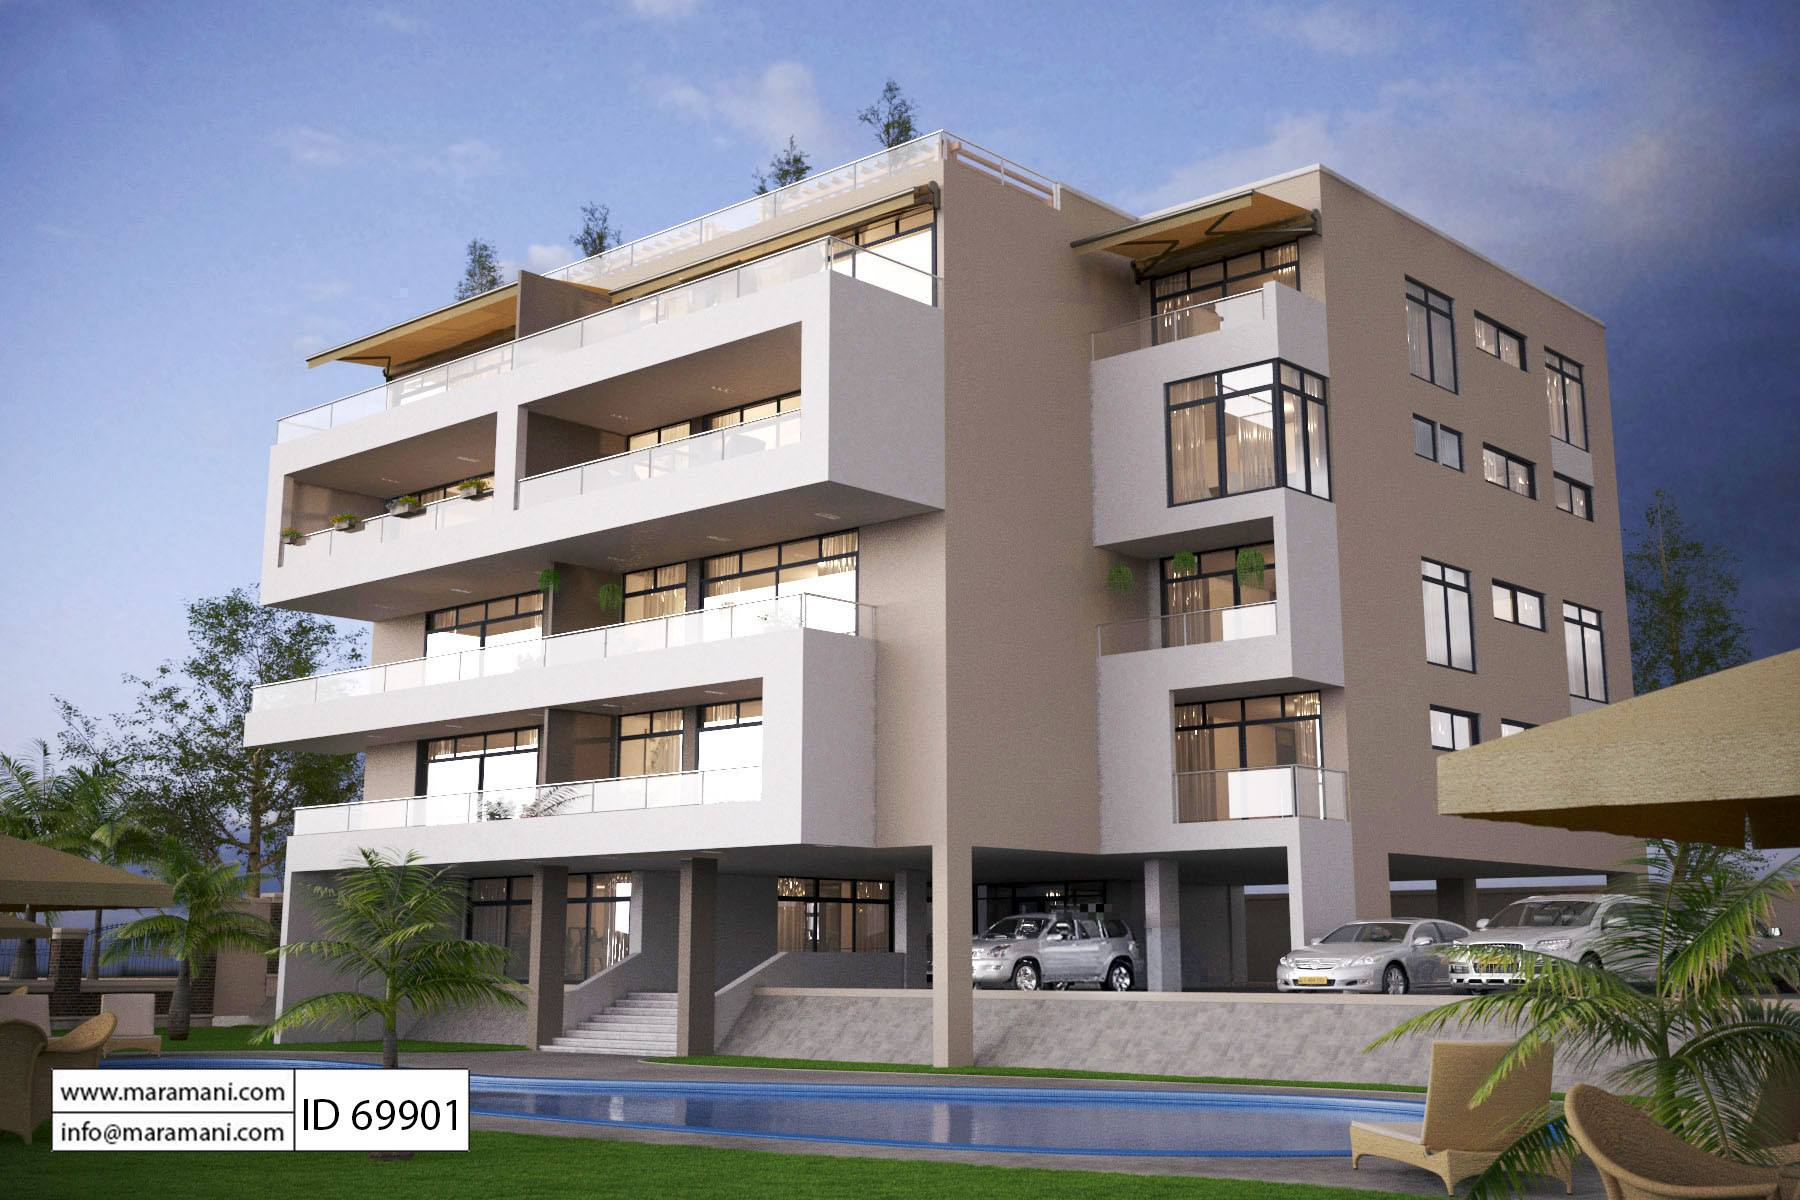 6 story apartment design id 69901 house designs by for One story apartments